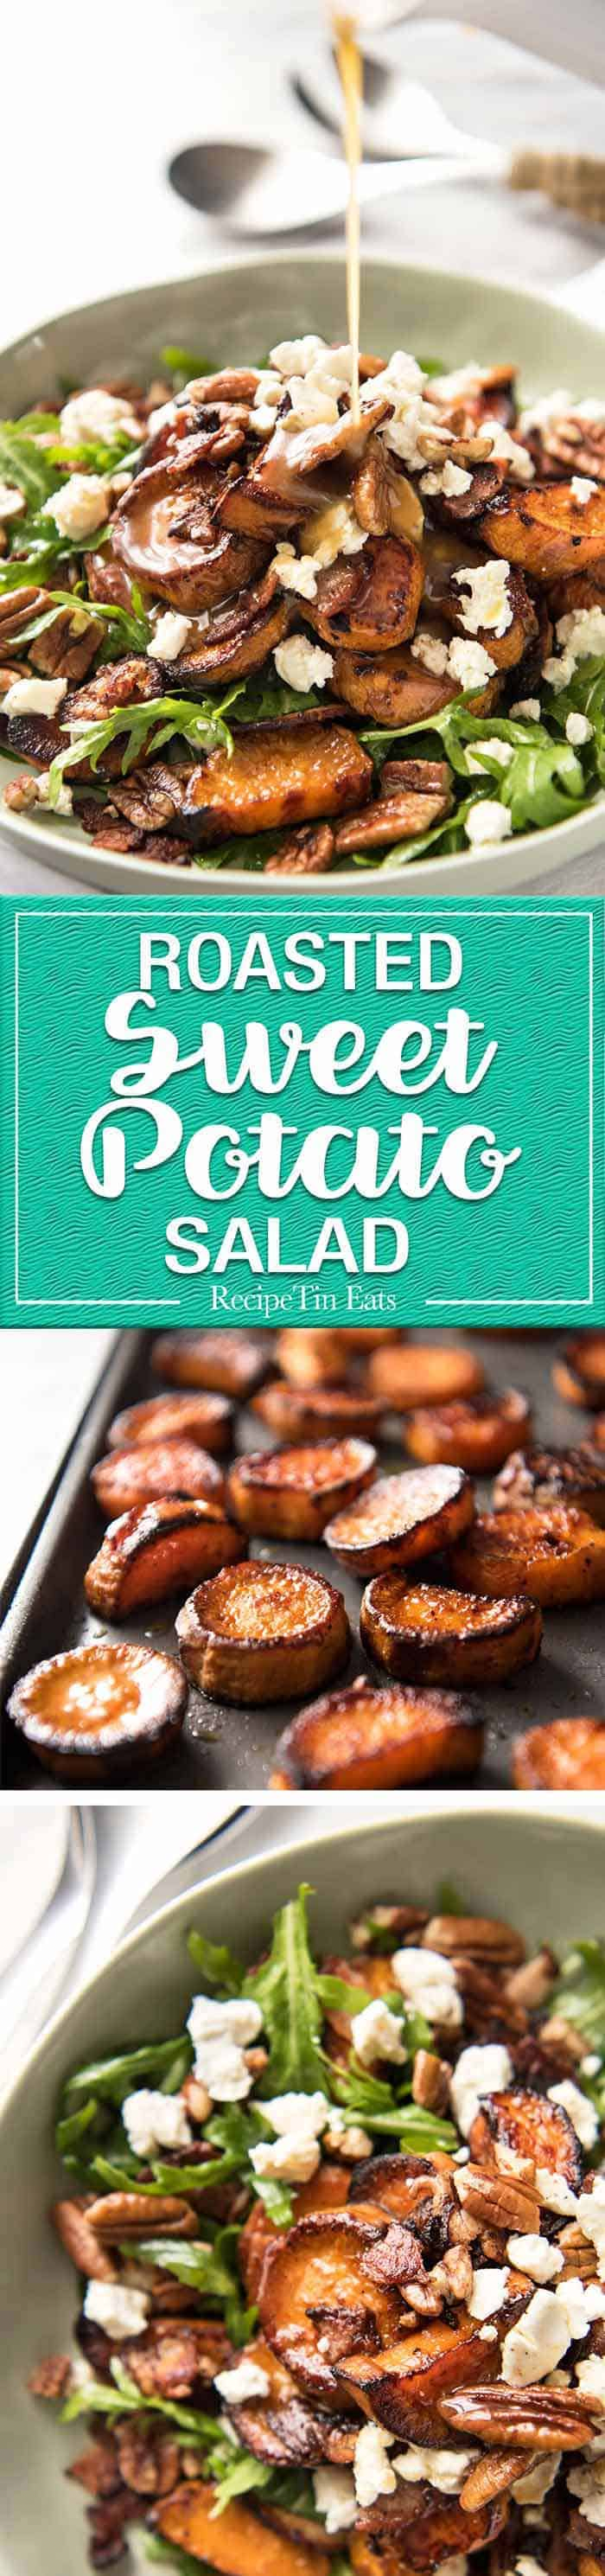 Roasted Sweet Potato Salad - magical combination of arugula/rocket, pecans, goats cheese or feta, a sprinkle of bacon and a beautiful Honey Lemon dressing. www.recipetineats.com